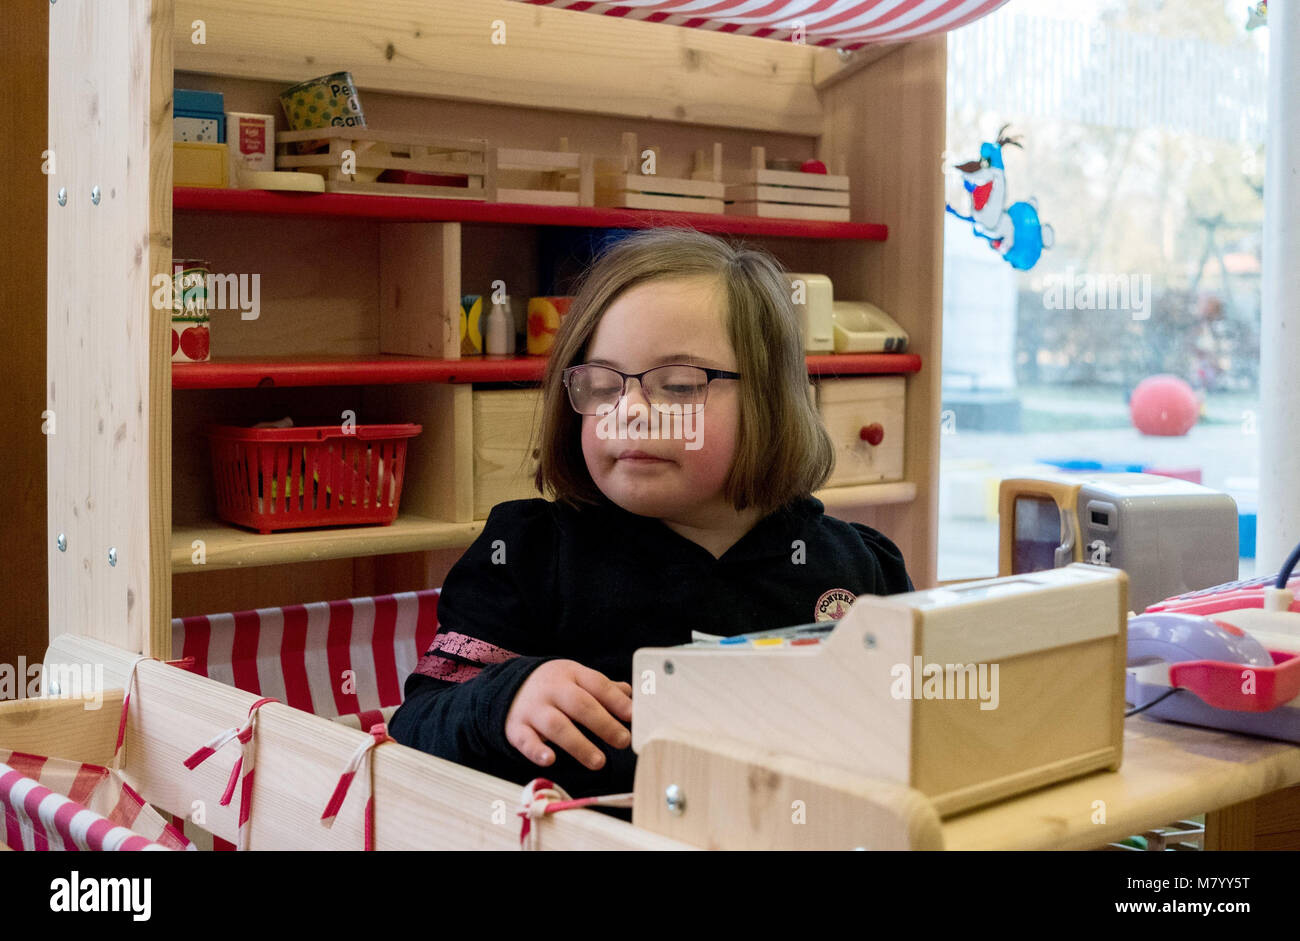 08 February 2018, Germany, Oranienburg: Nora, a child with Down's syndrome, plays with a till at the parent - Stock Image